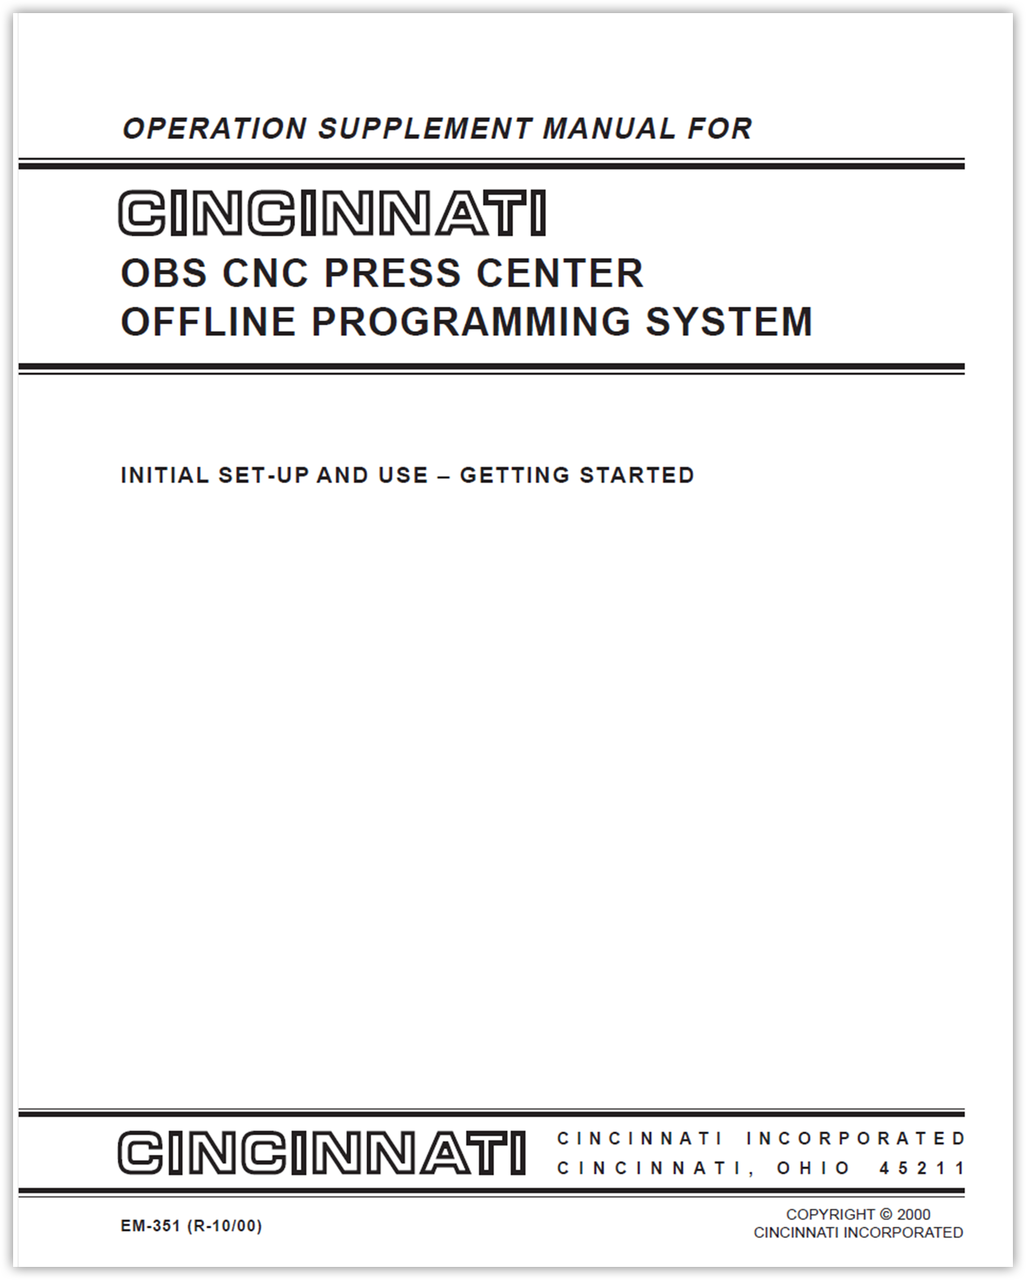 EM-351 (R-10-00) OBS CNC Press Center Offline Programming System - Operation Supplement Manual - Initial Set-up and Use - Getting Started